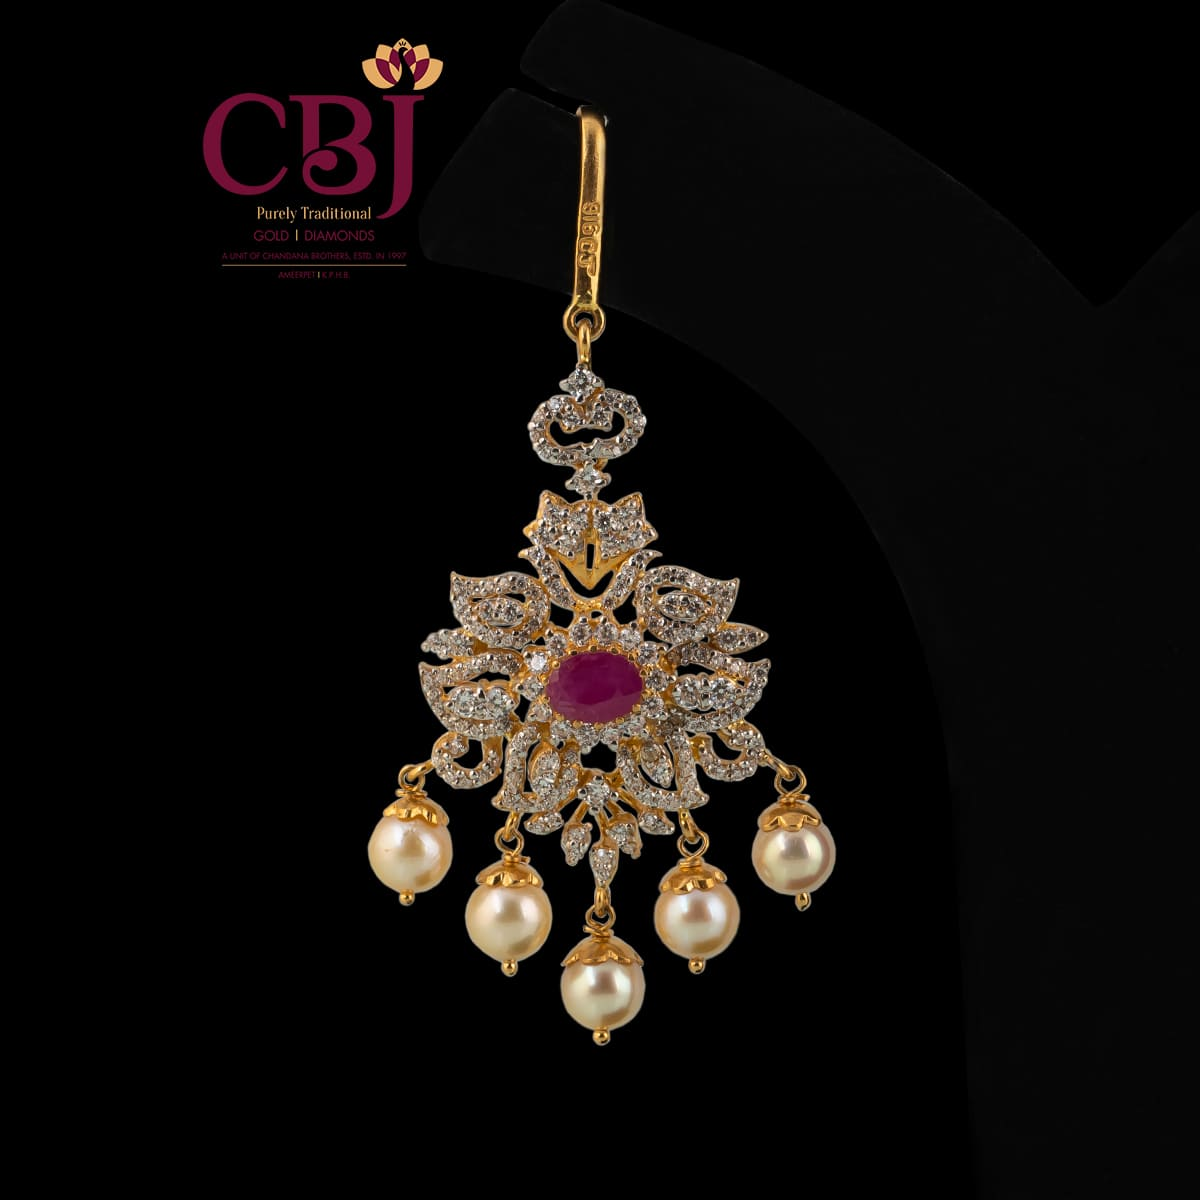 CZ Maang tikka featuring pearls and CZ stones.